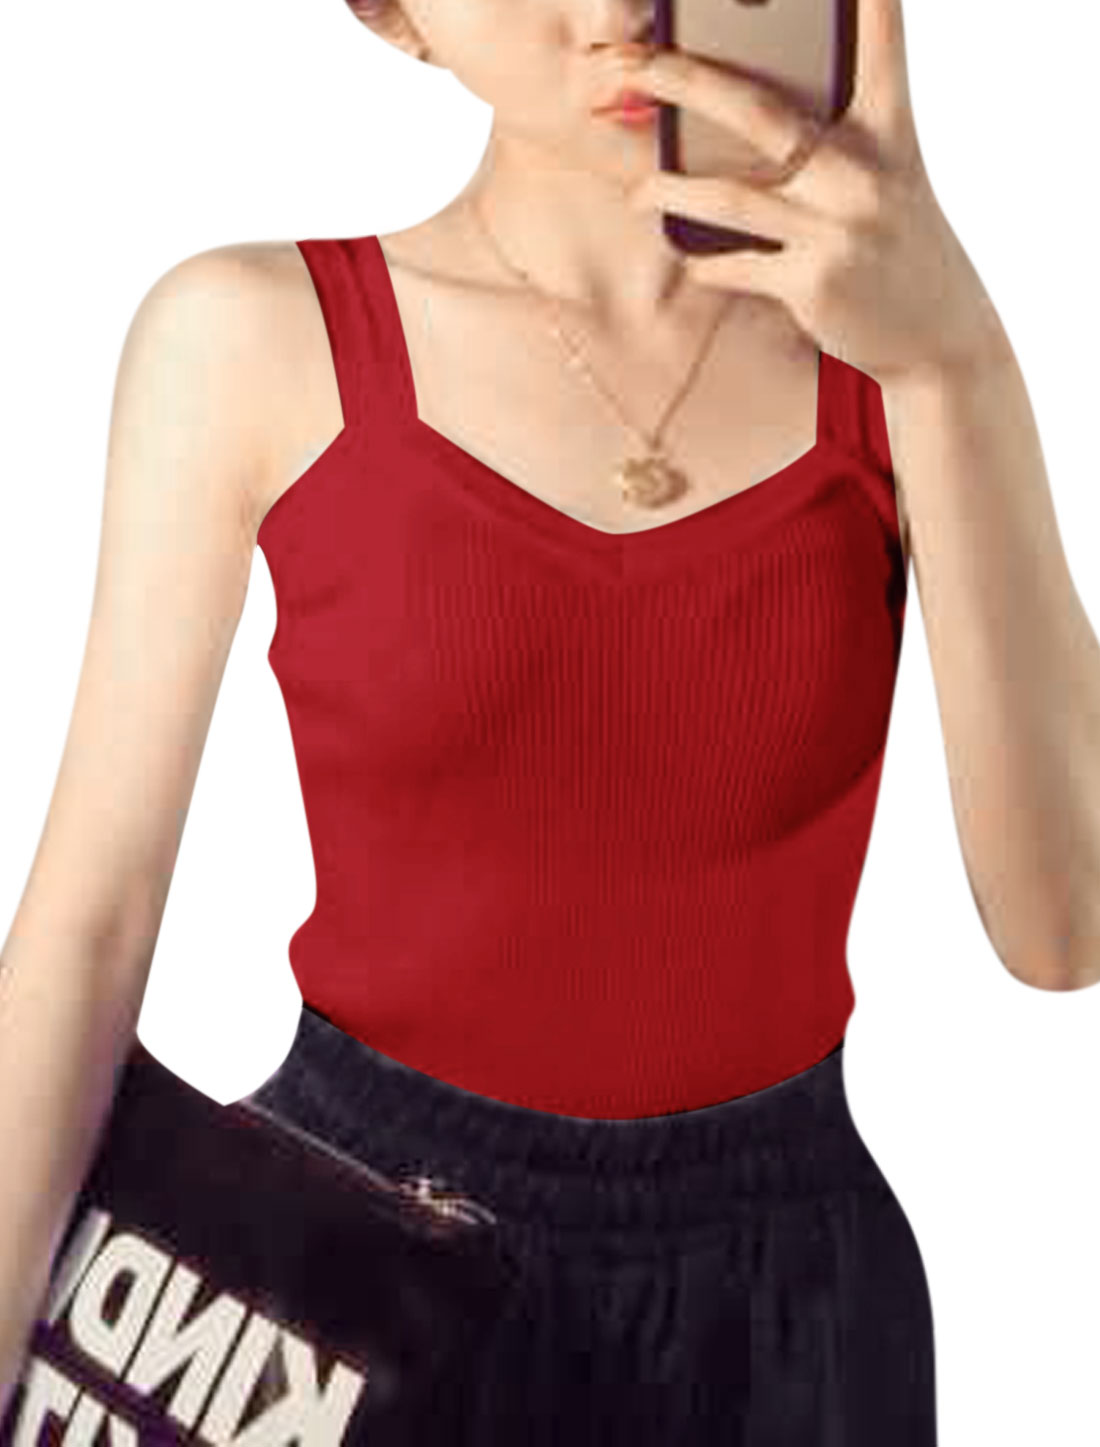 Women Sweetheart Neckline Sleeveless Stretchy Knit Tank Tops Red XS